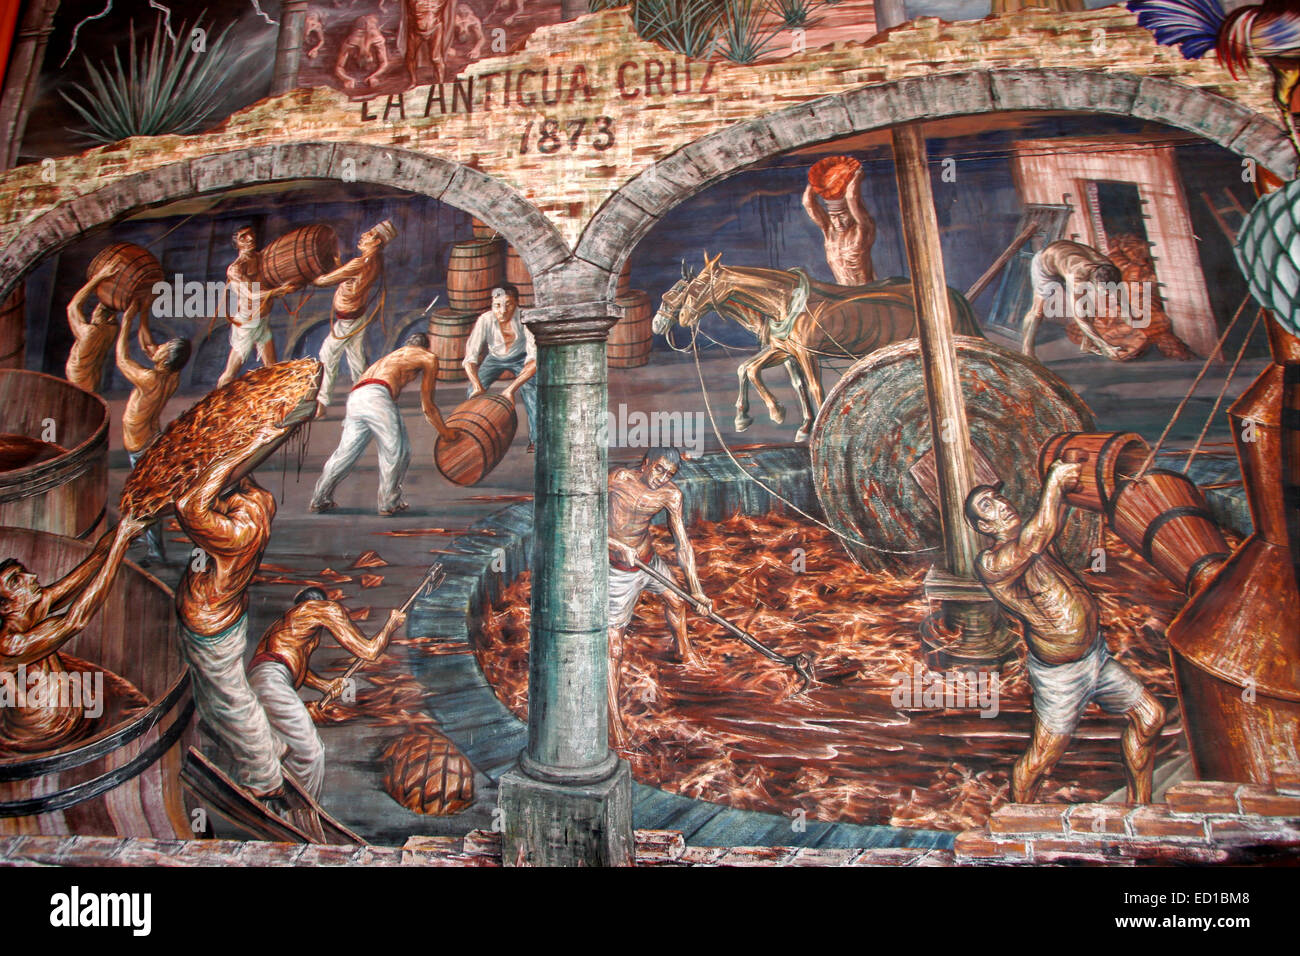 Detail Of A Mural By Gabriel Flores Depicting The Founding Of Sauza